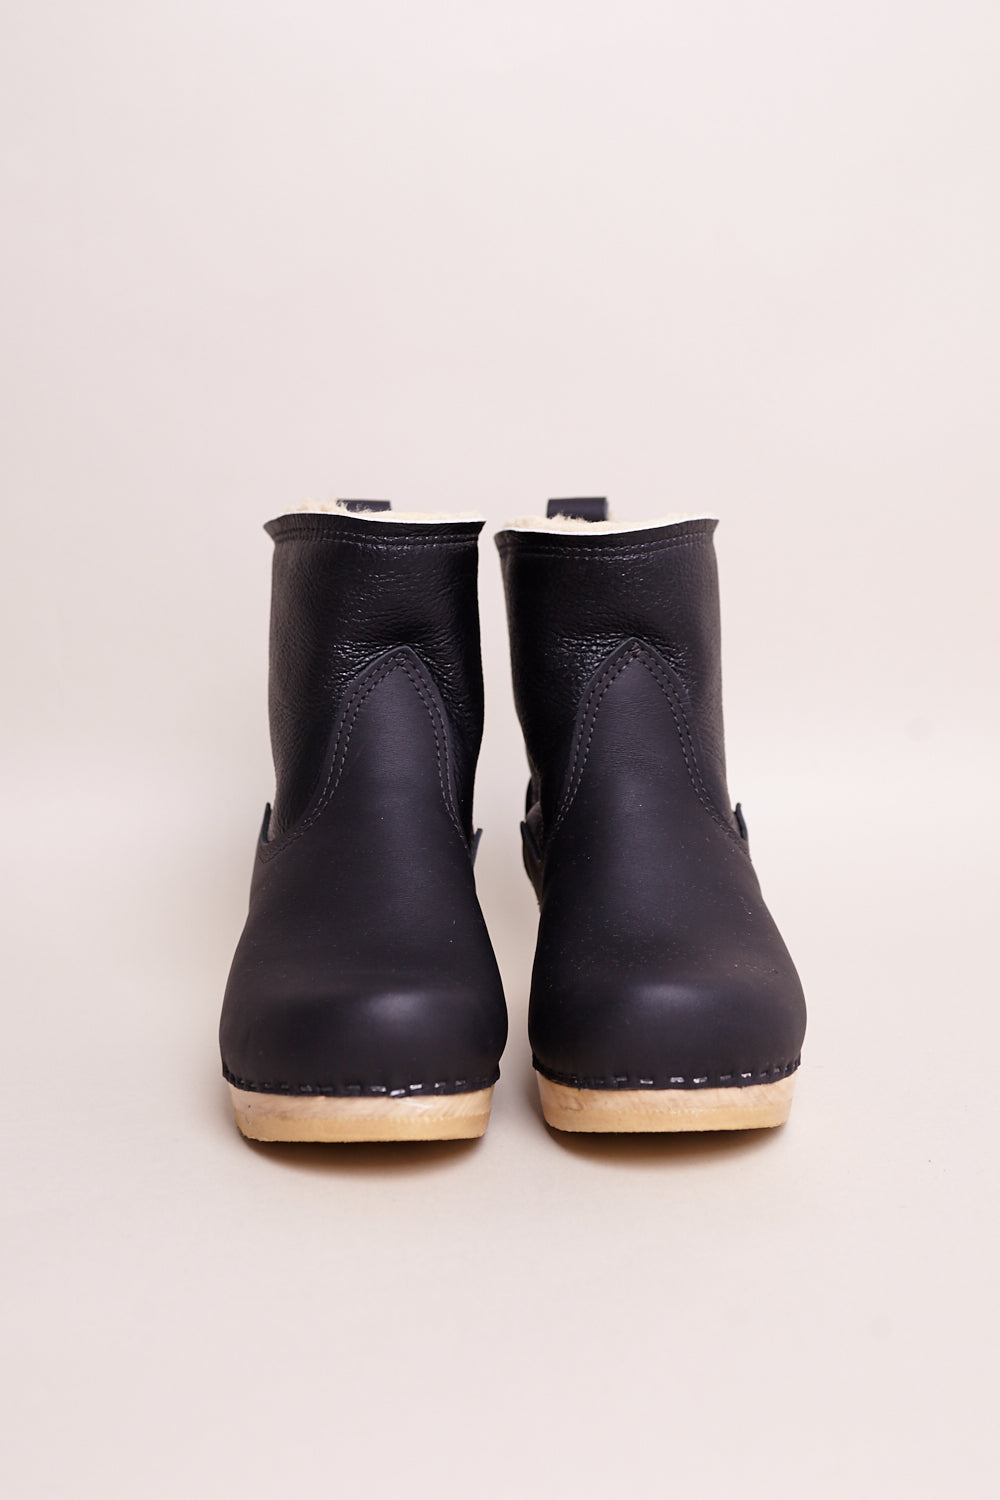 "No.6 5"" Pull on Shearling Clog Boot in Ink Aviator - Vert & Vogue"